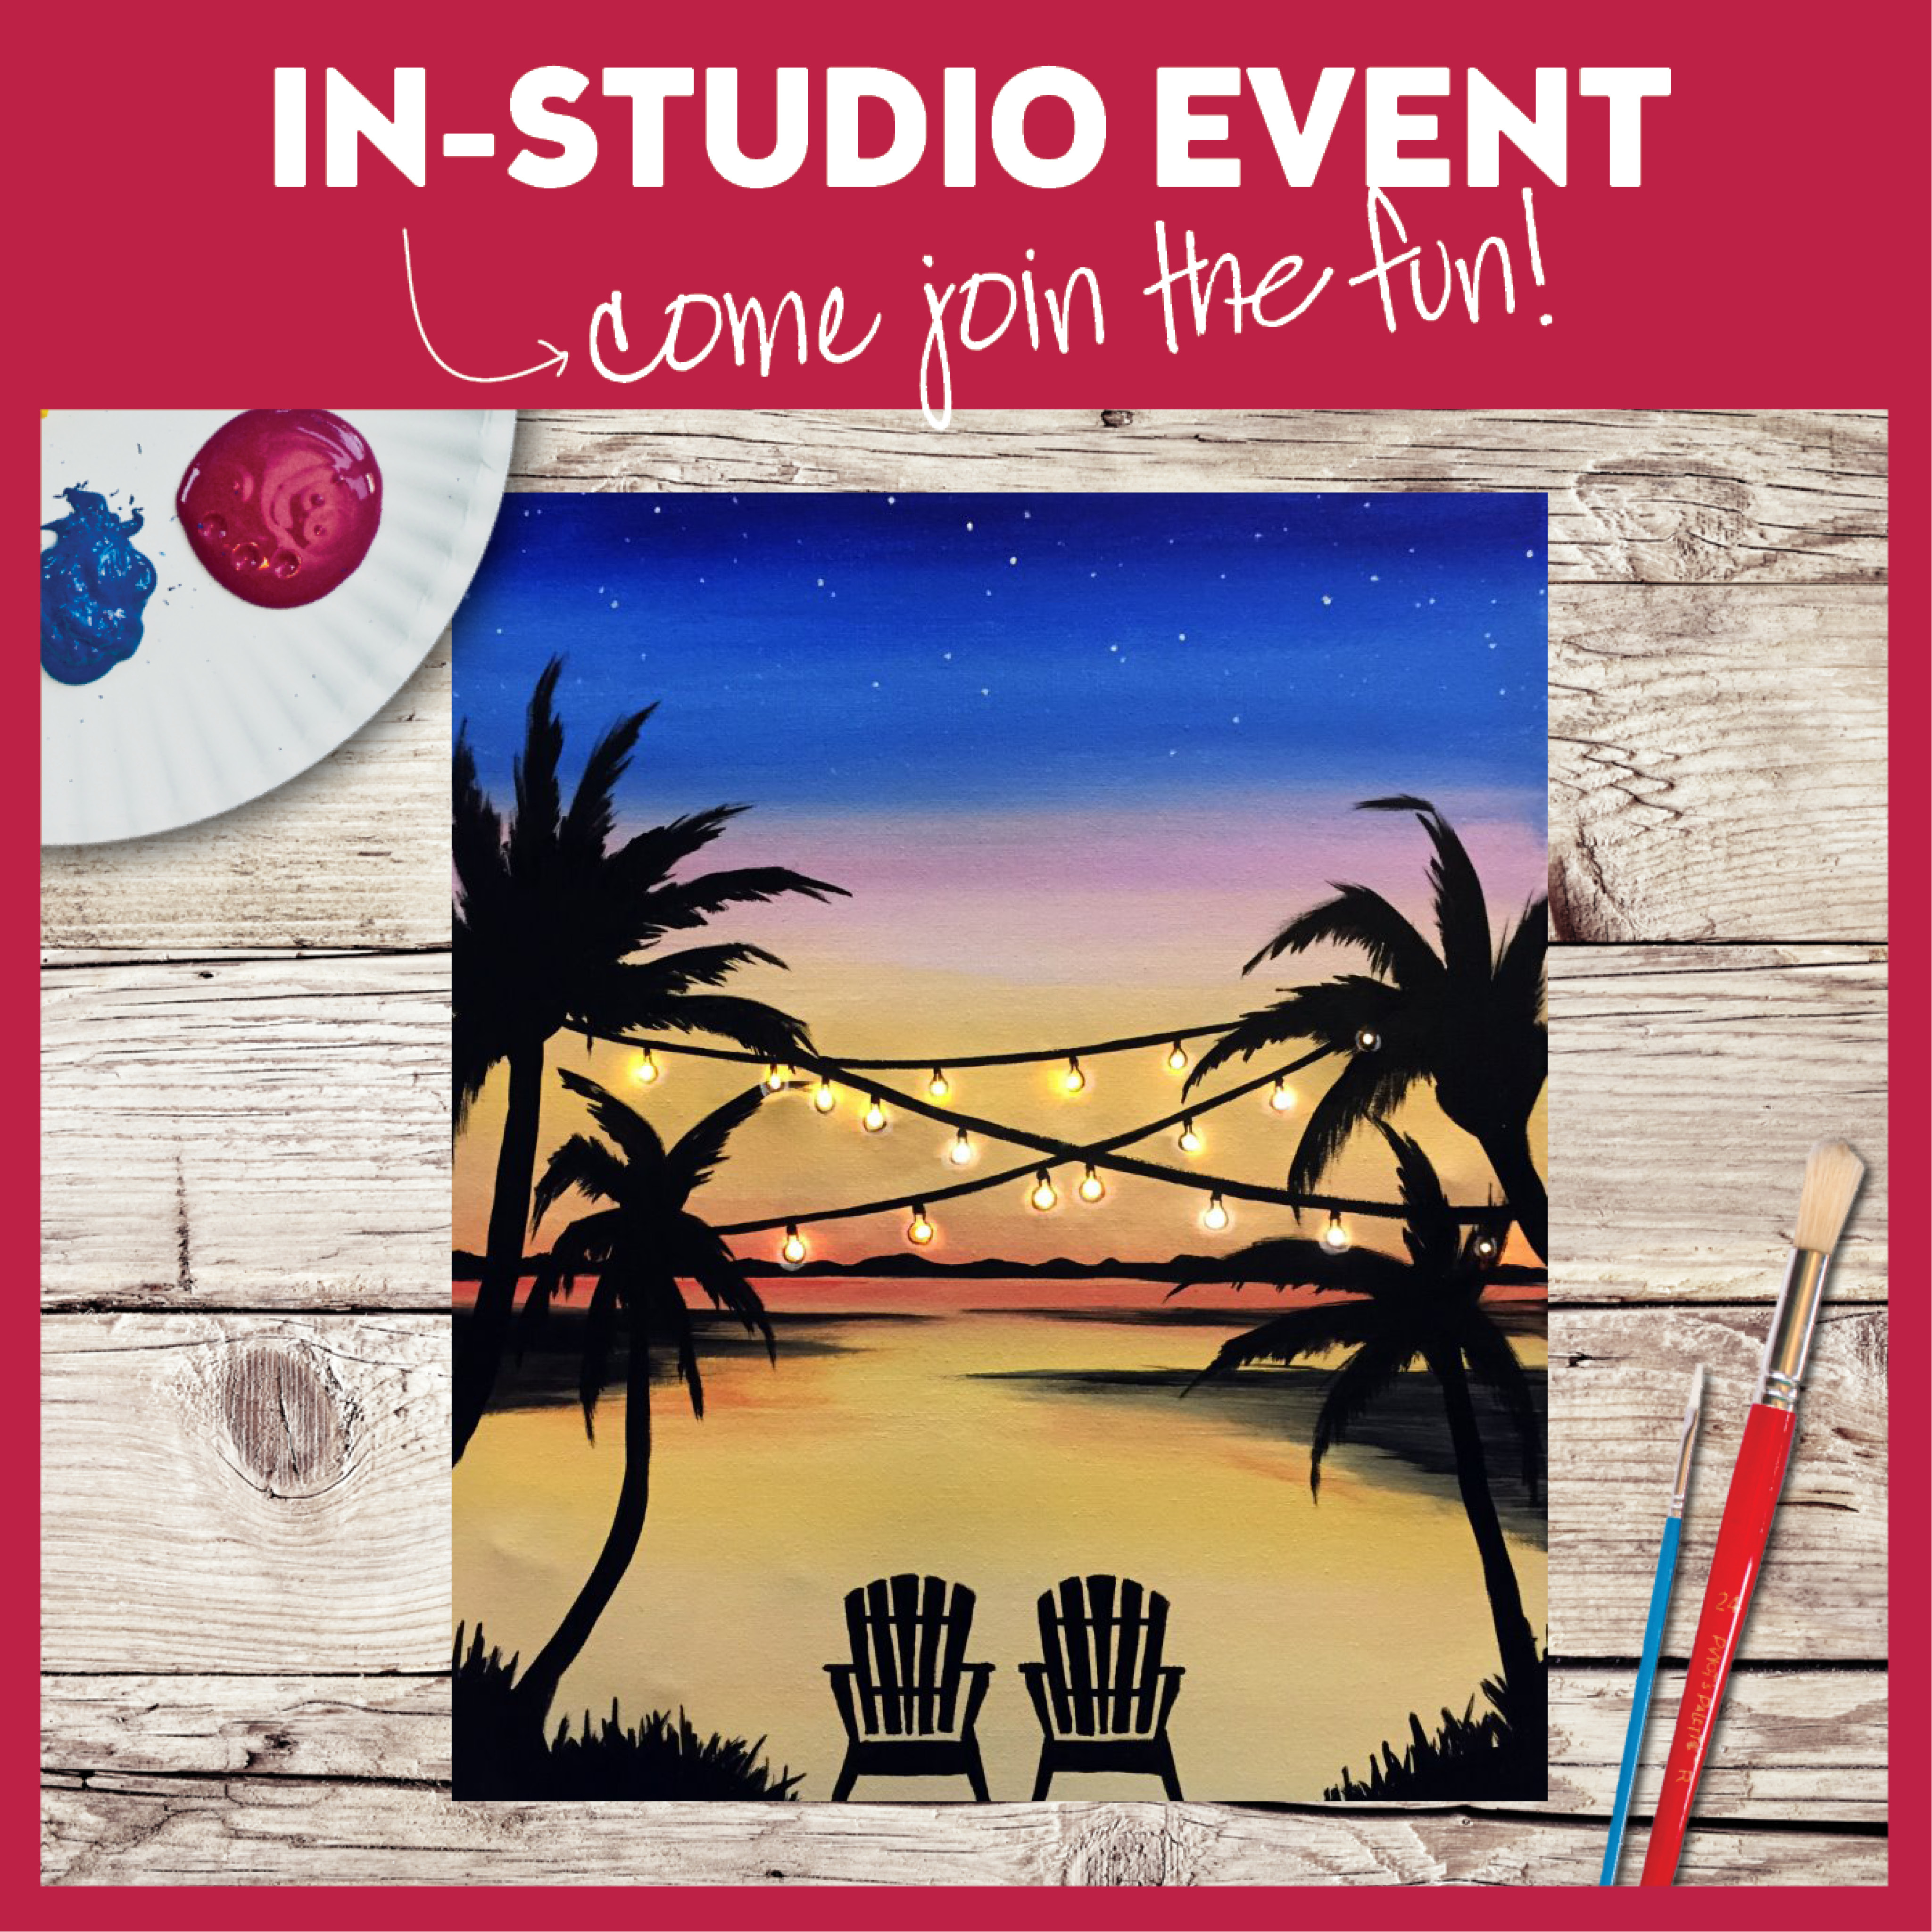 HOT NEW PAINTING! ILLUMINATED In Studio Class! Limited Seating!